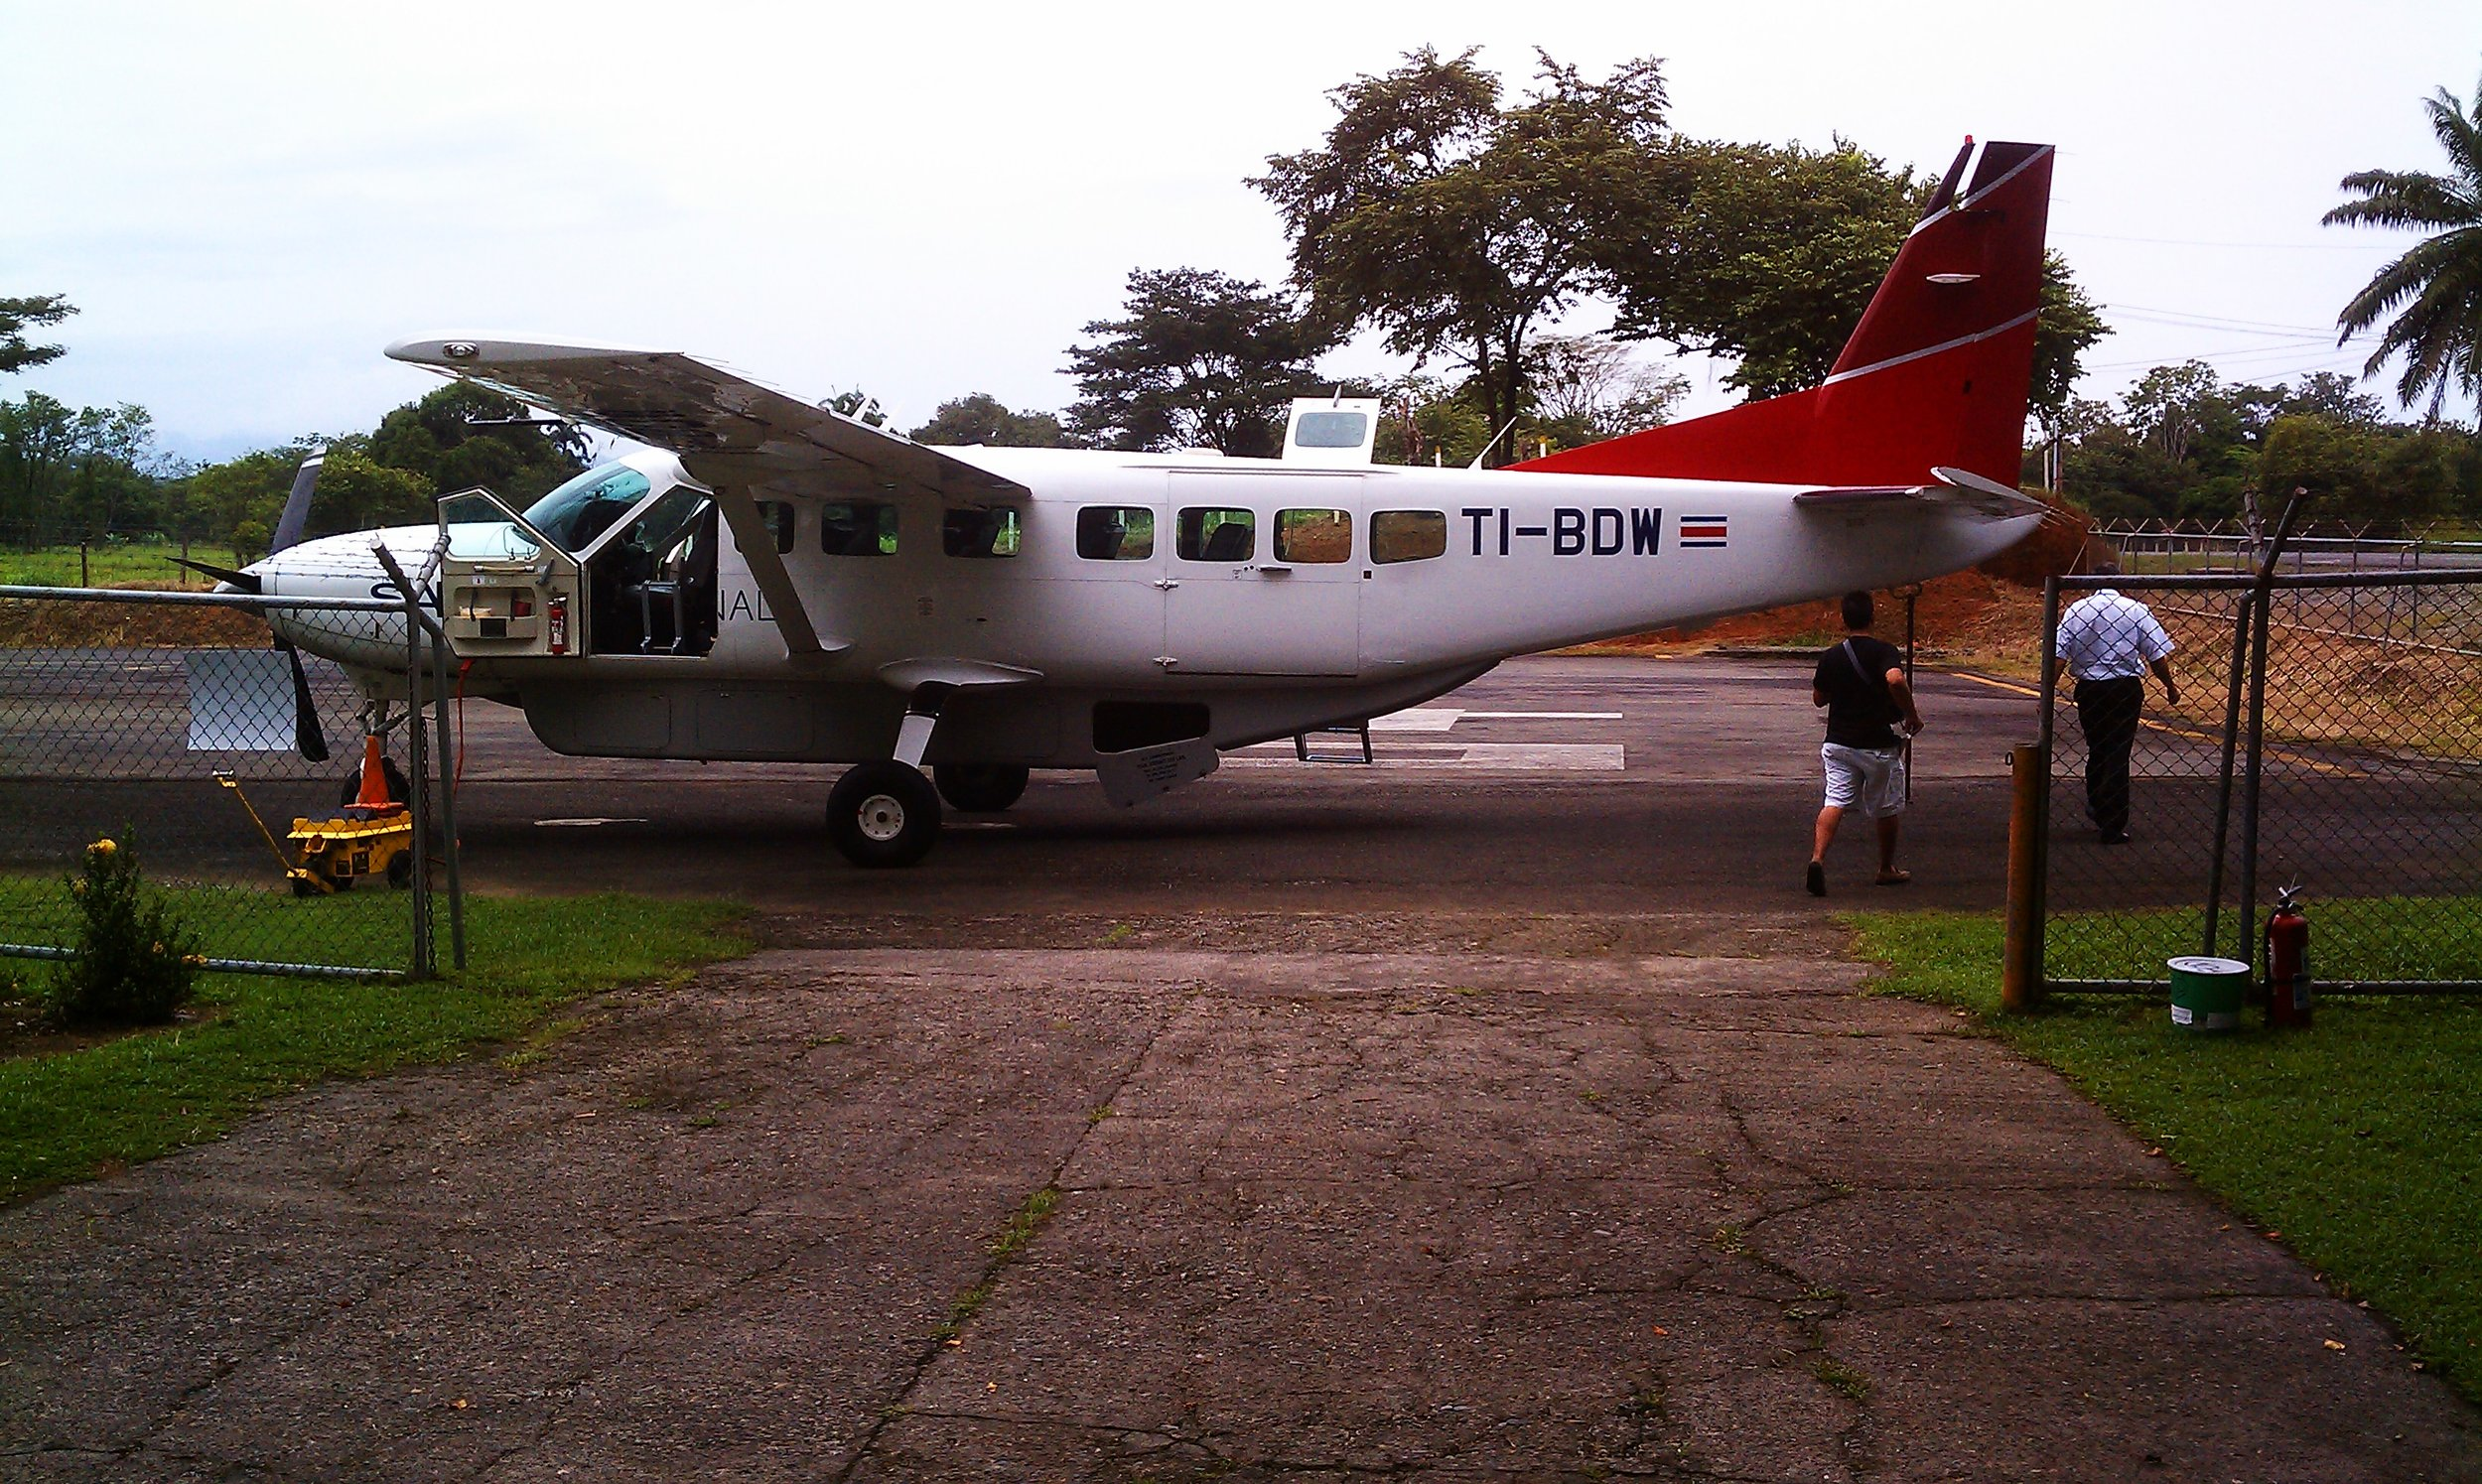 Once in Costa Rica, the best way to get around is by  Sansa Airlines , which is owned and operated out of San Jose, Costa Rica. This will save hours on driving and is rather affordable. For example, you can fly direct from San Jose to Manuel Antonio for $70, and it's a 20-minute flight, as opposed to making the three-hour drive